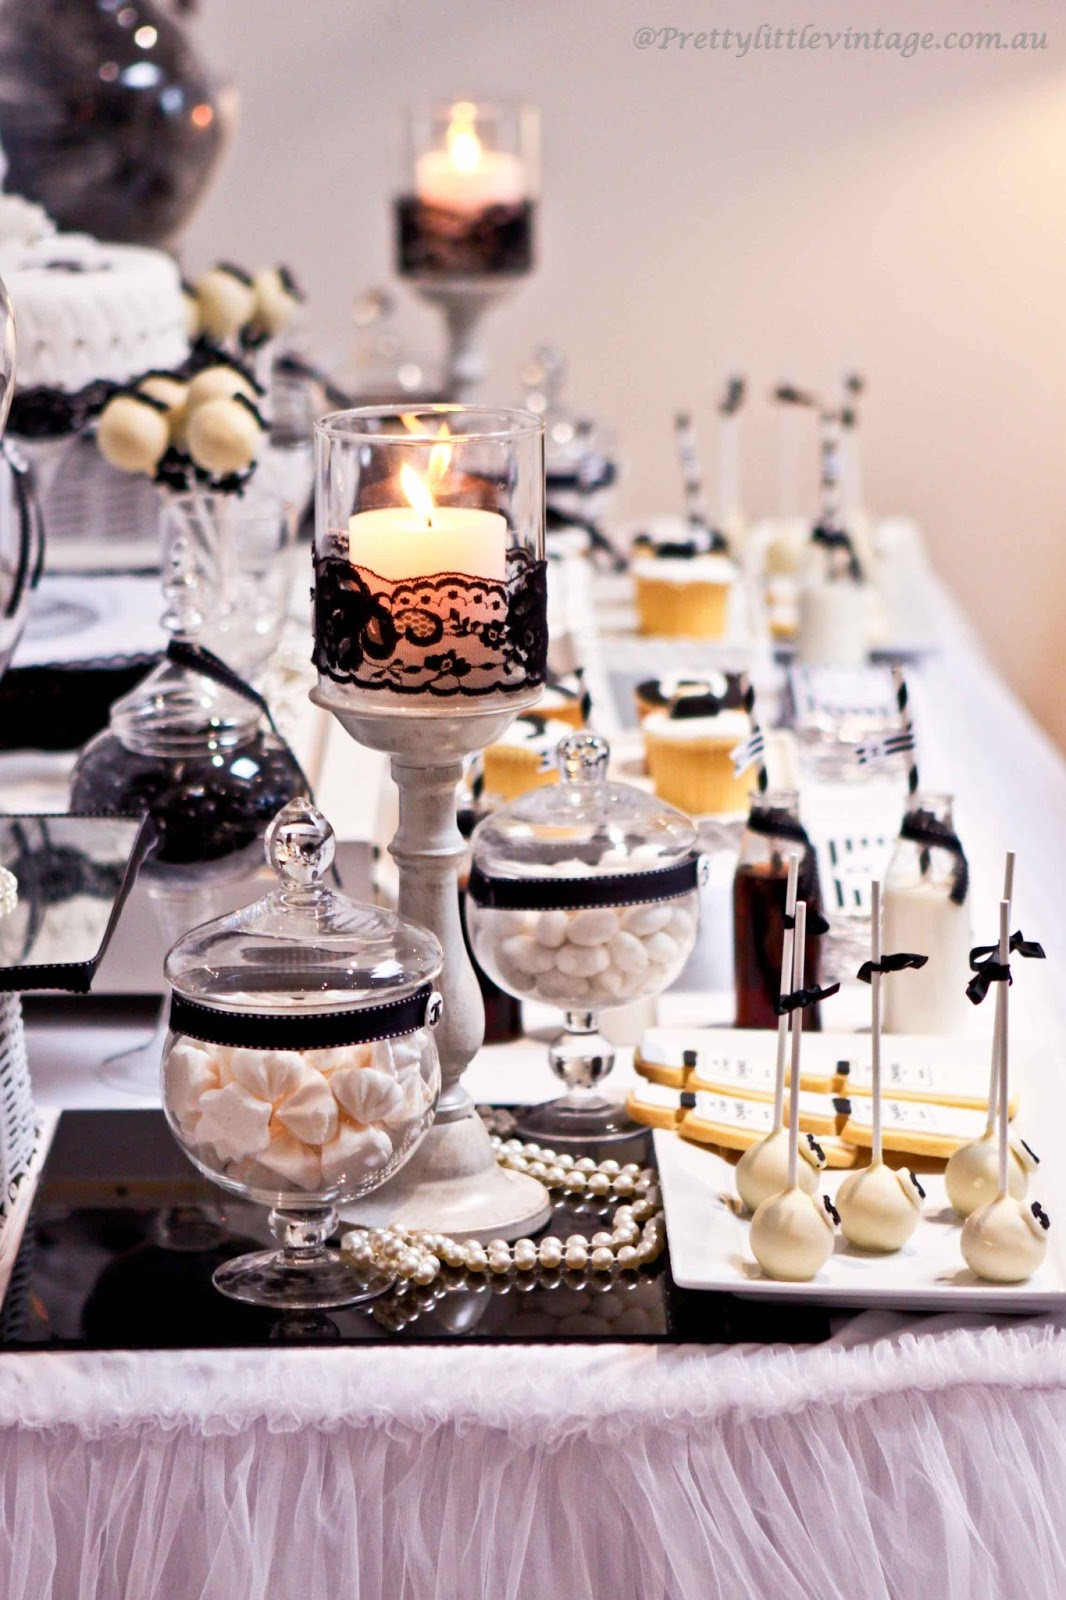 Little big company the blog chanel no 30 themed table by pretty little vintage melbourne - French themed table decorations ...